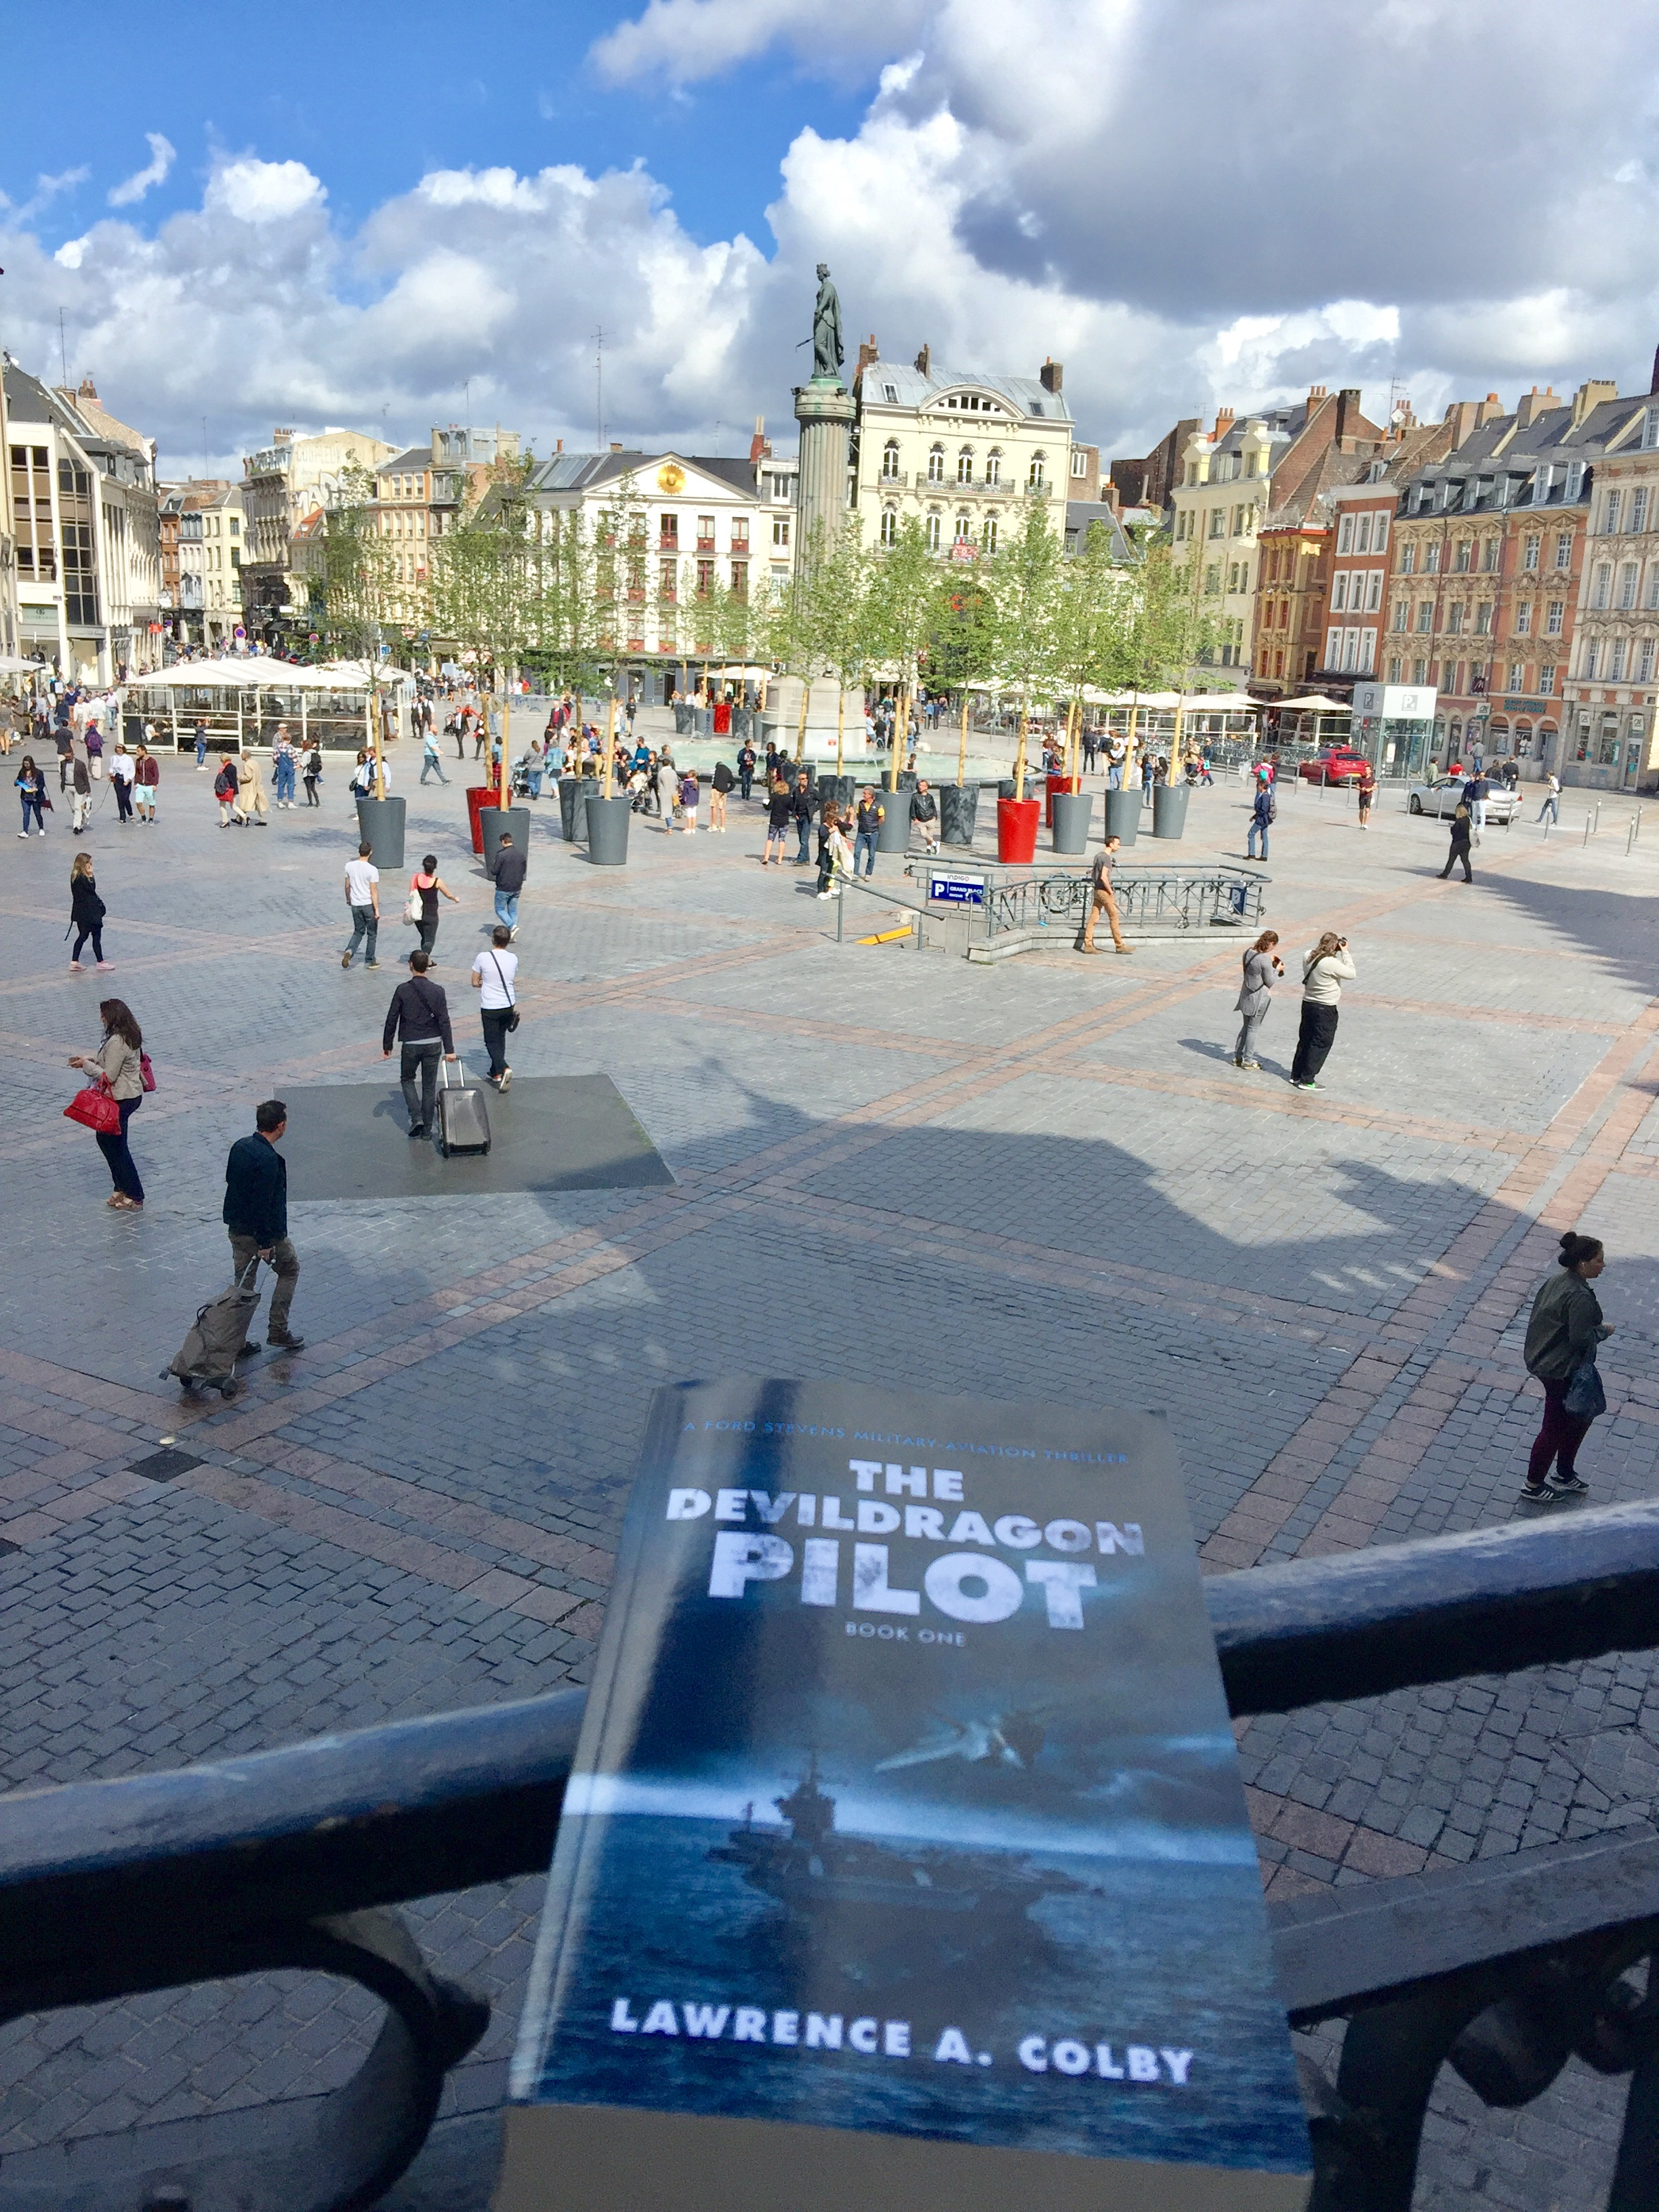 The Devil Dragon Pilot in Amsterdam, Netherlands!